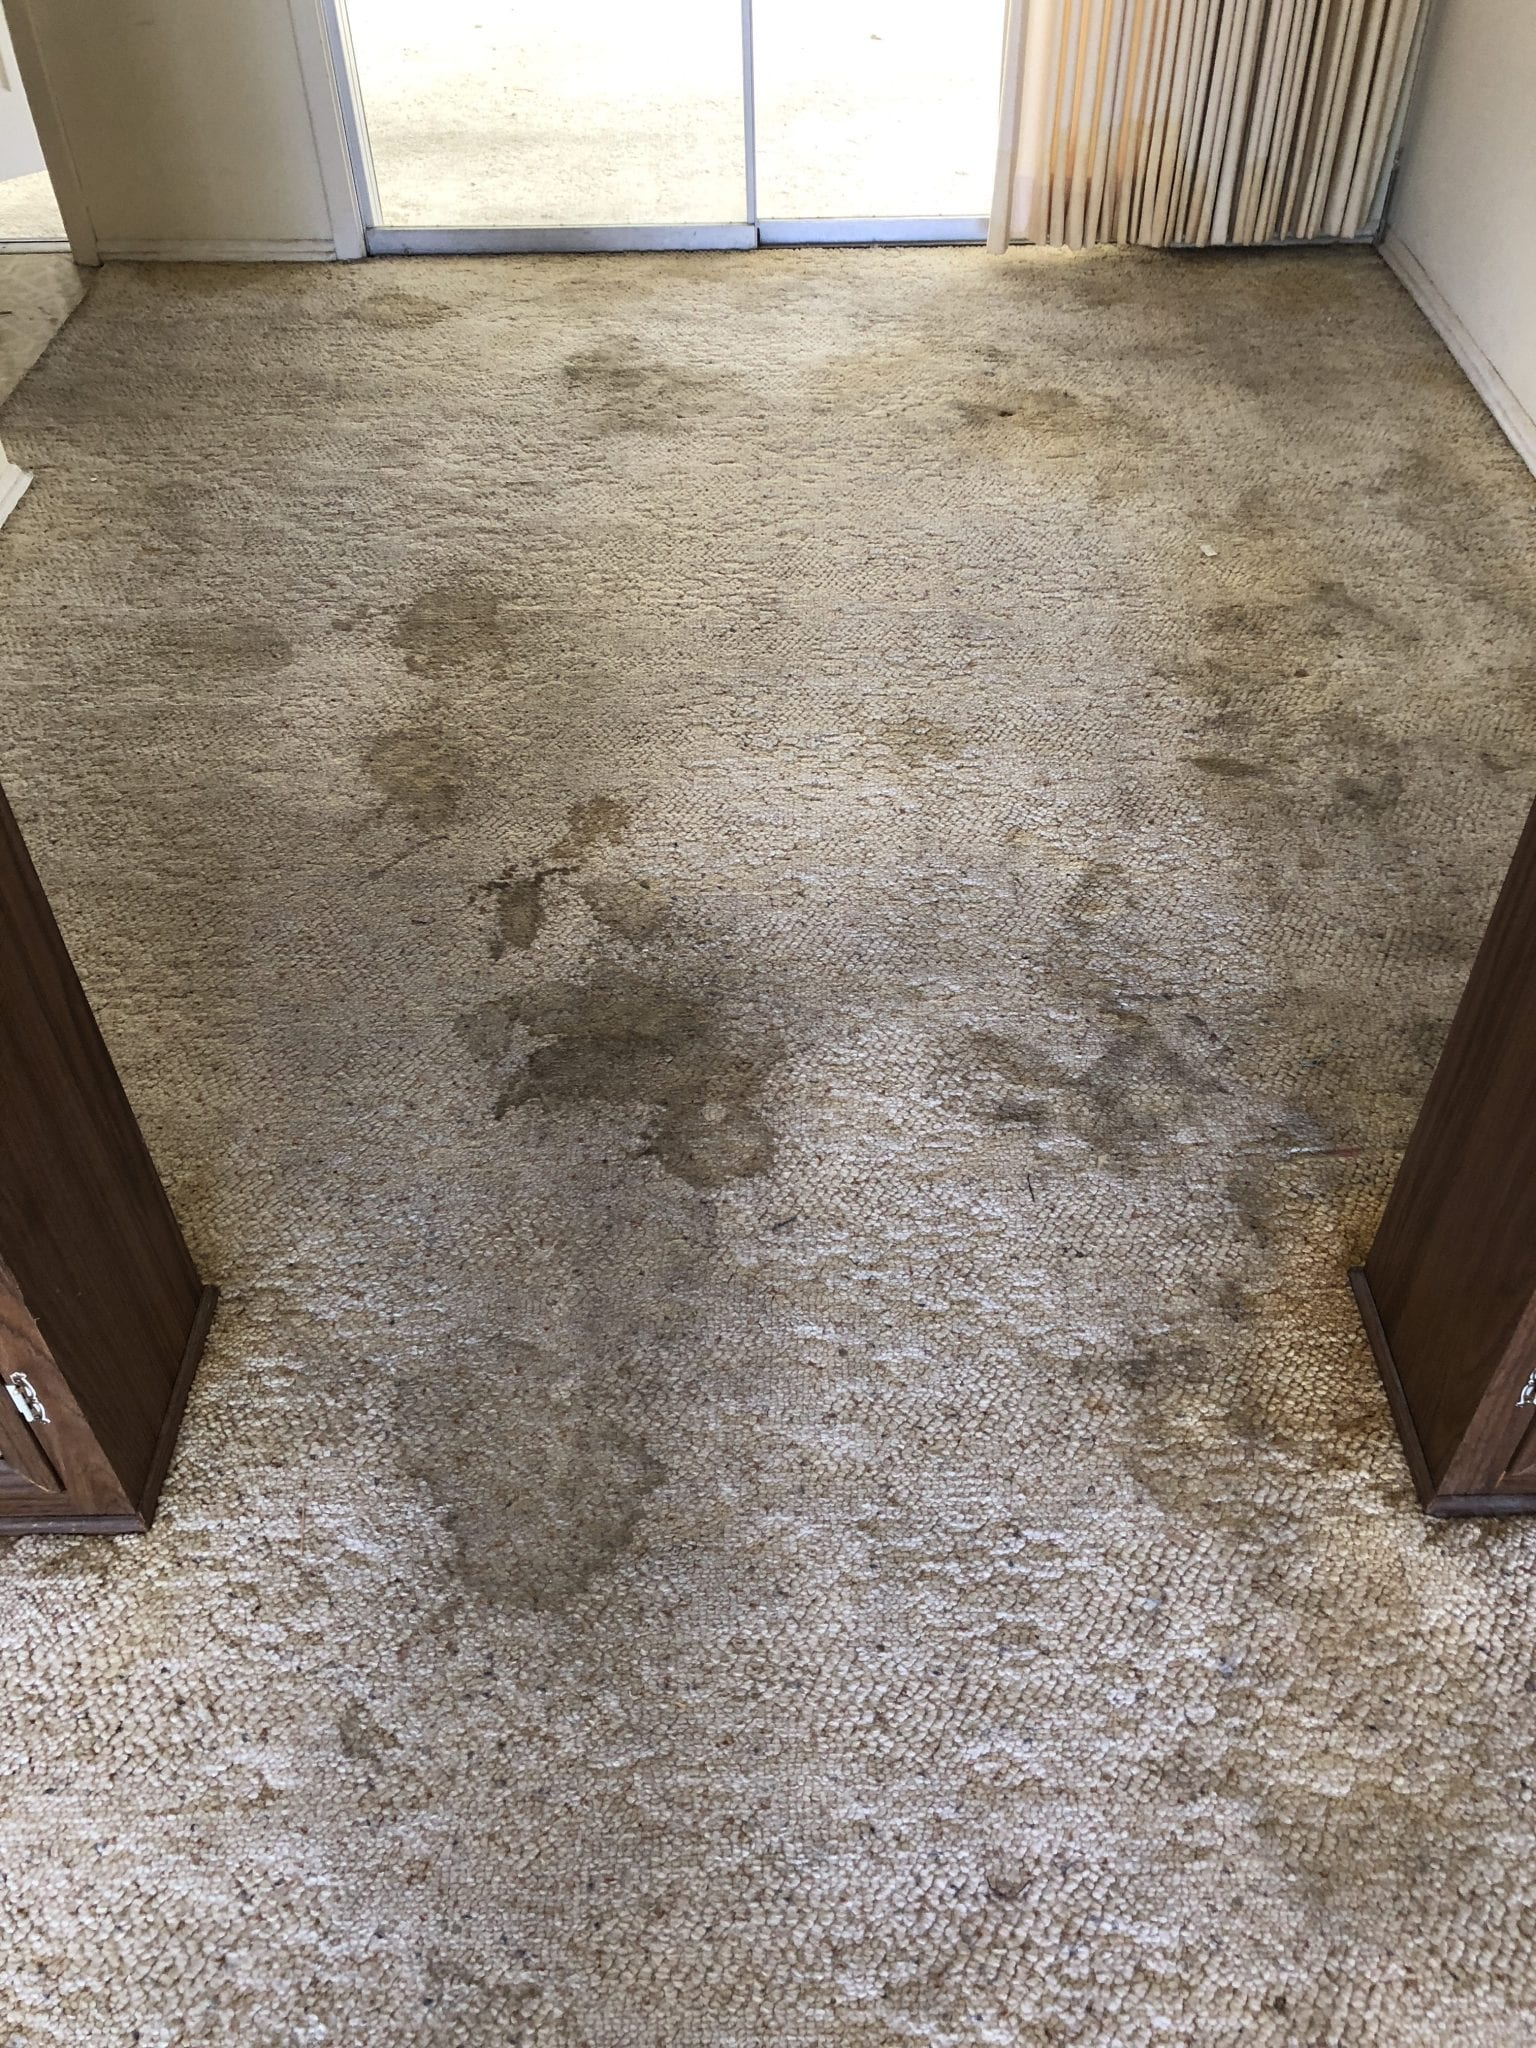 Flagstaff Carpet Cleaning